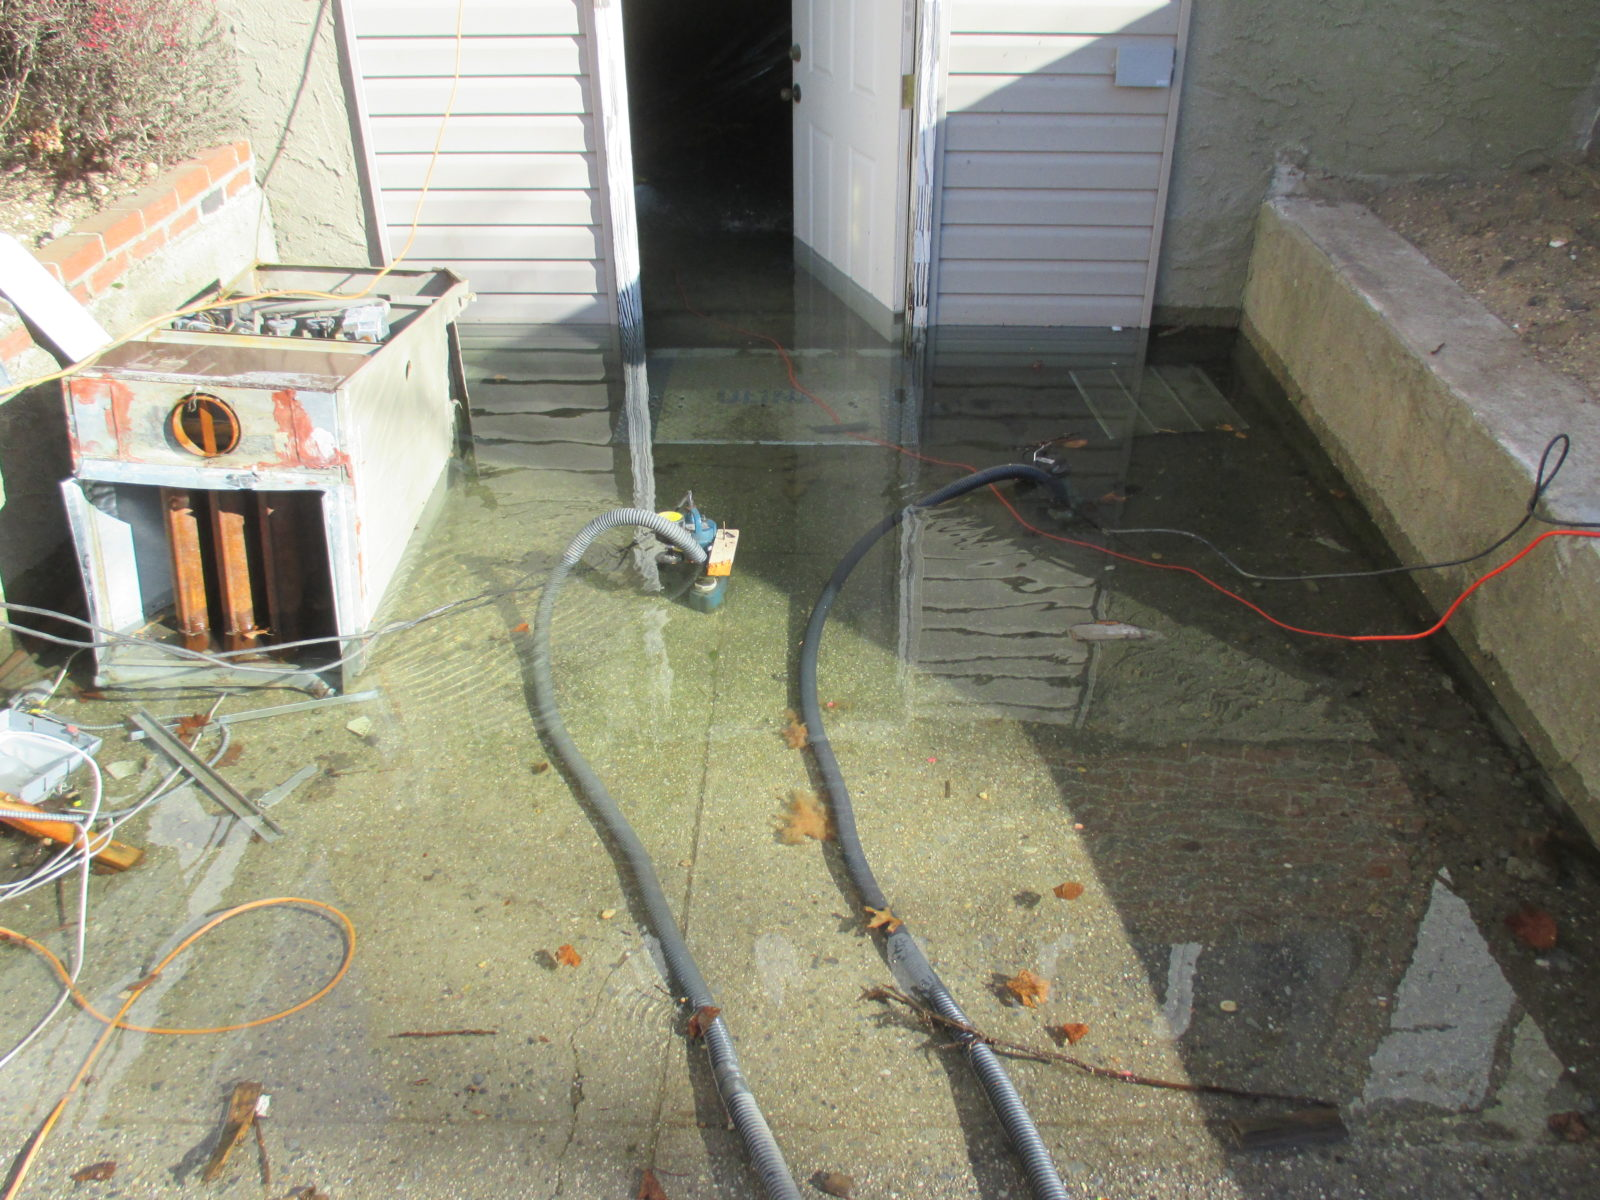 Water Main Leak Floods Basement ...